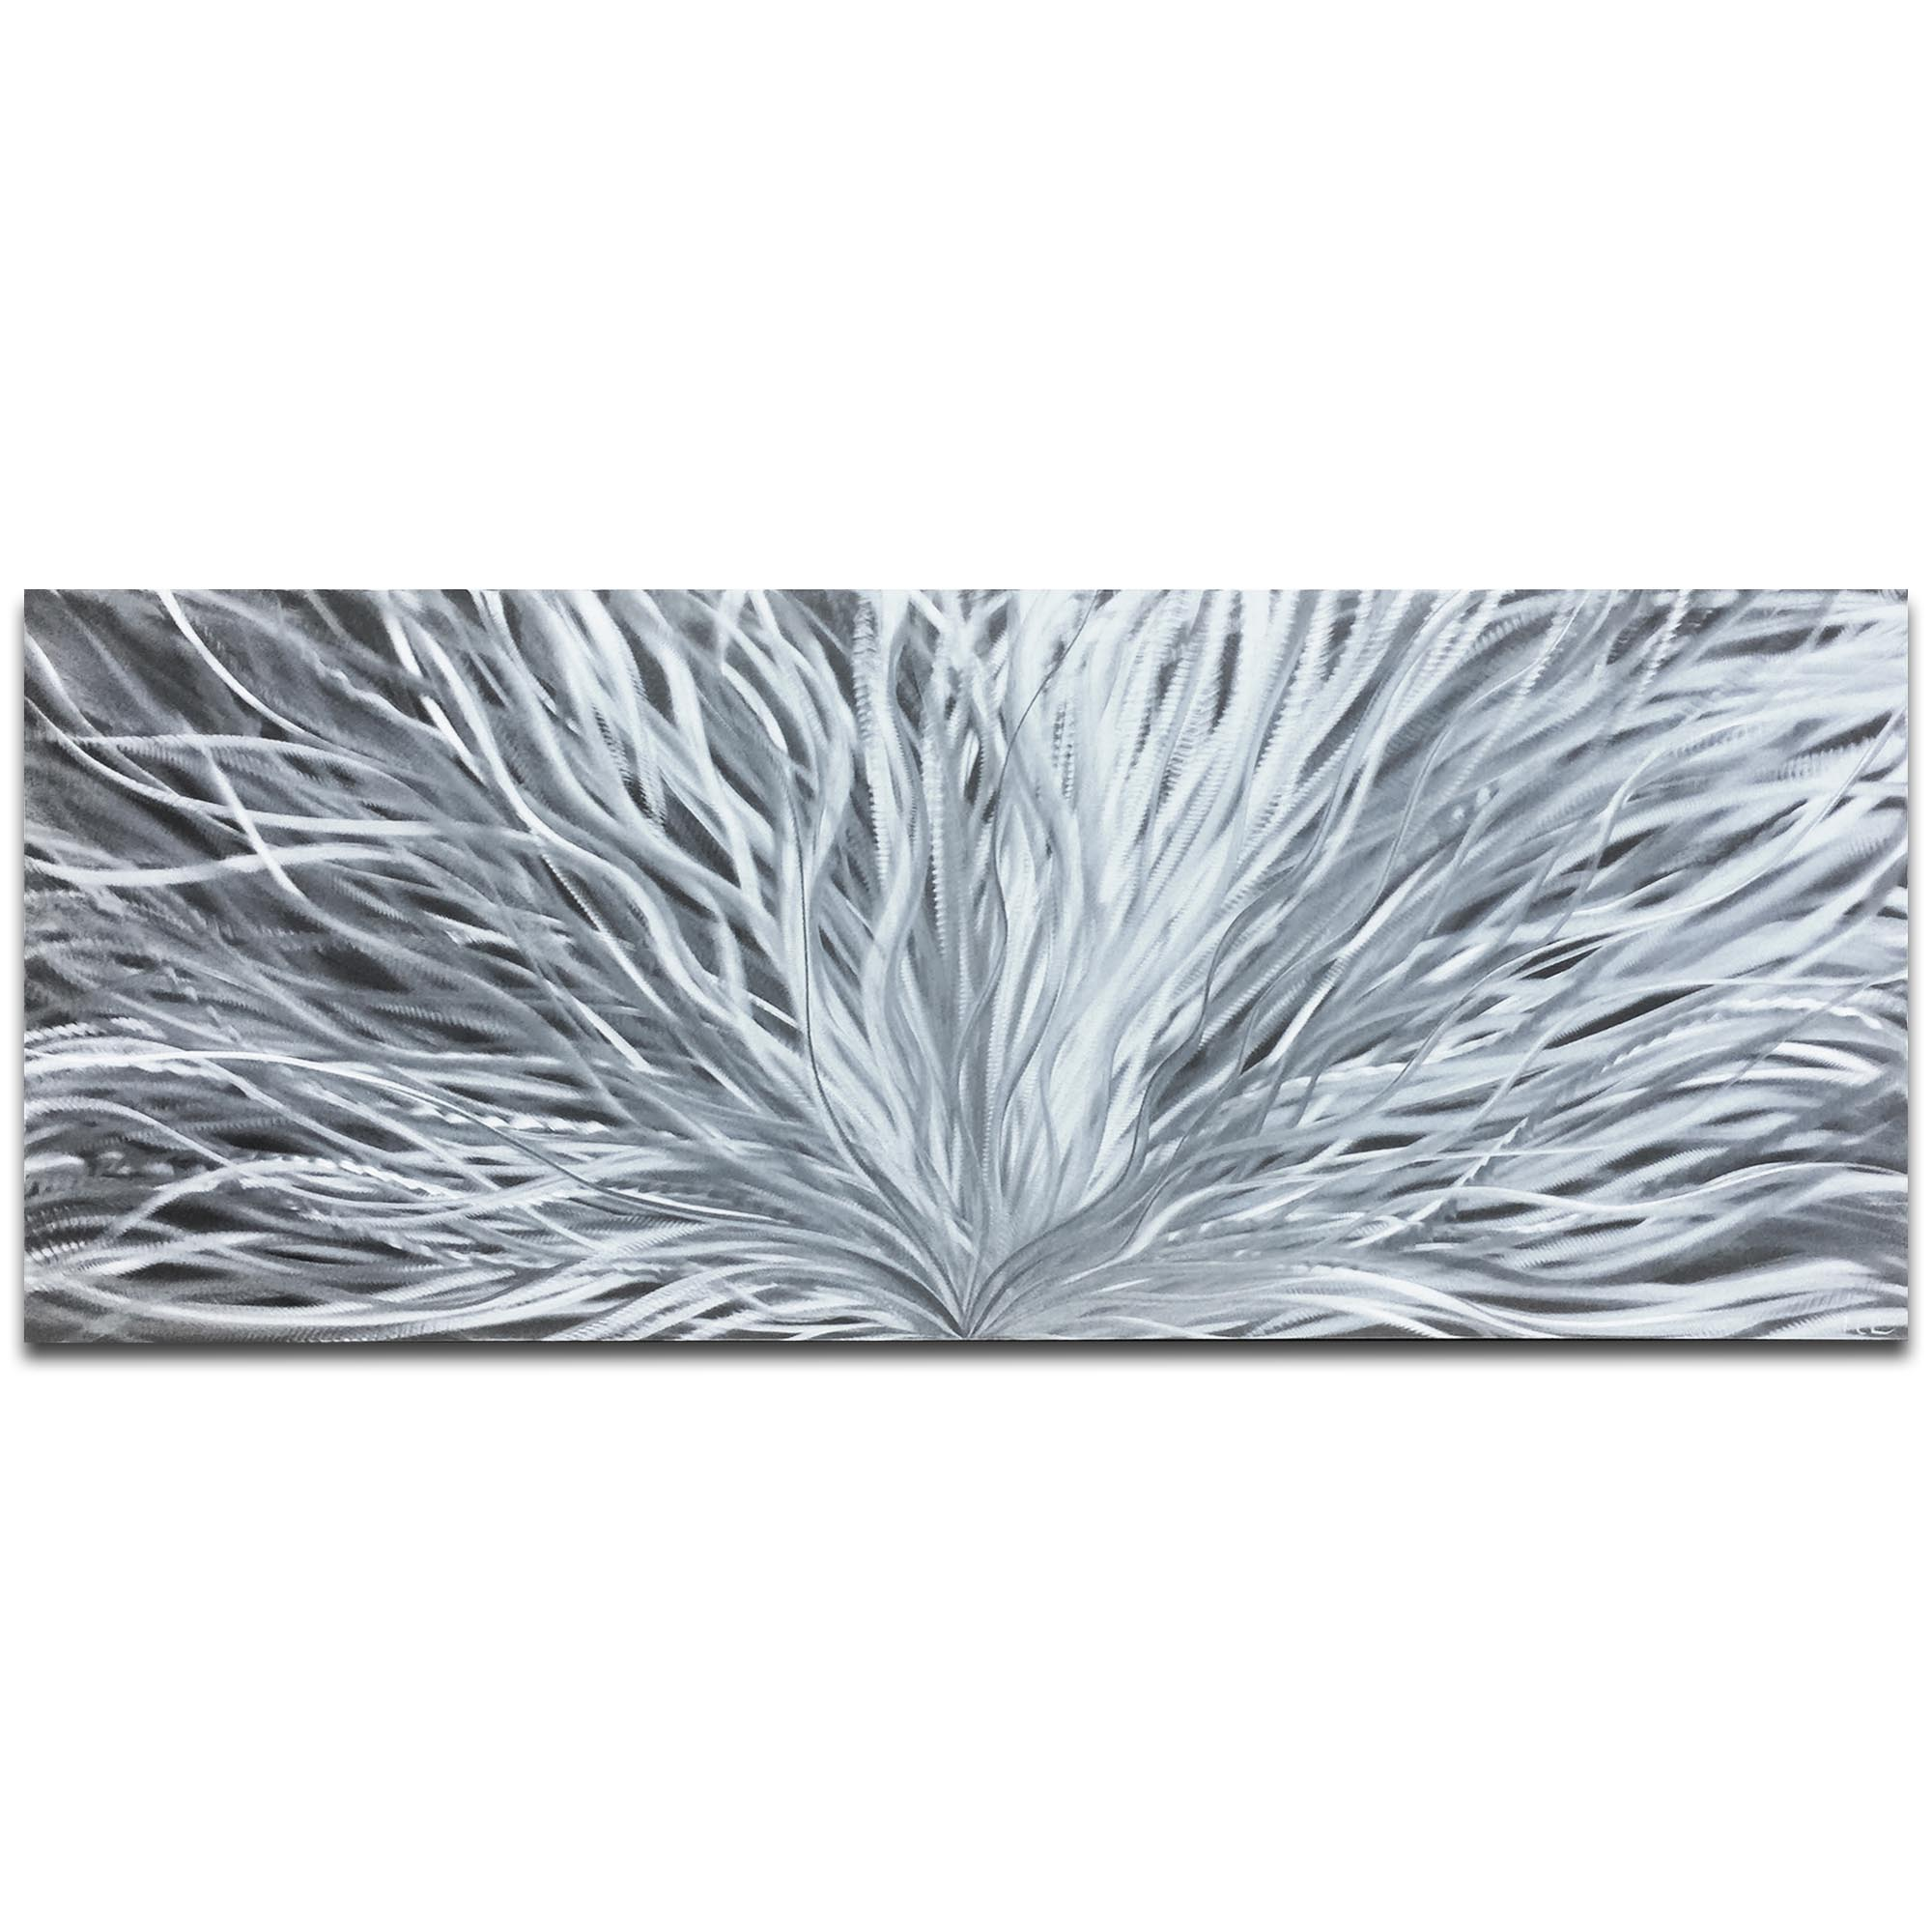 Helena Martin 'Blooming Silver' 60in x 24in Original Abstract Art on Ground Metal